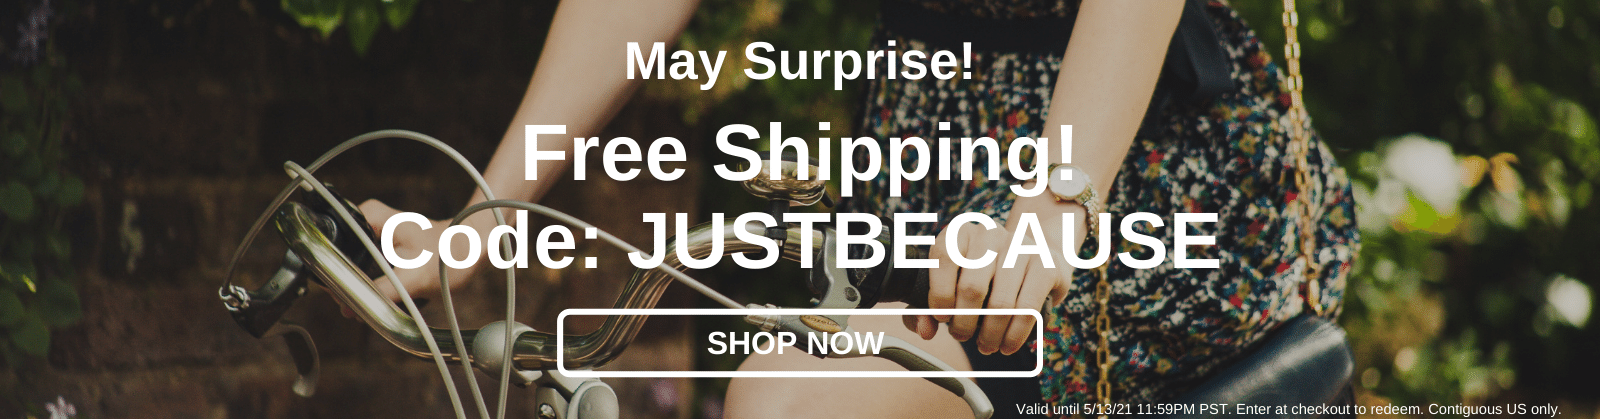 May Surprise! Free Shipping! Code: JUSTBECAUSE [Shop Now]